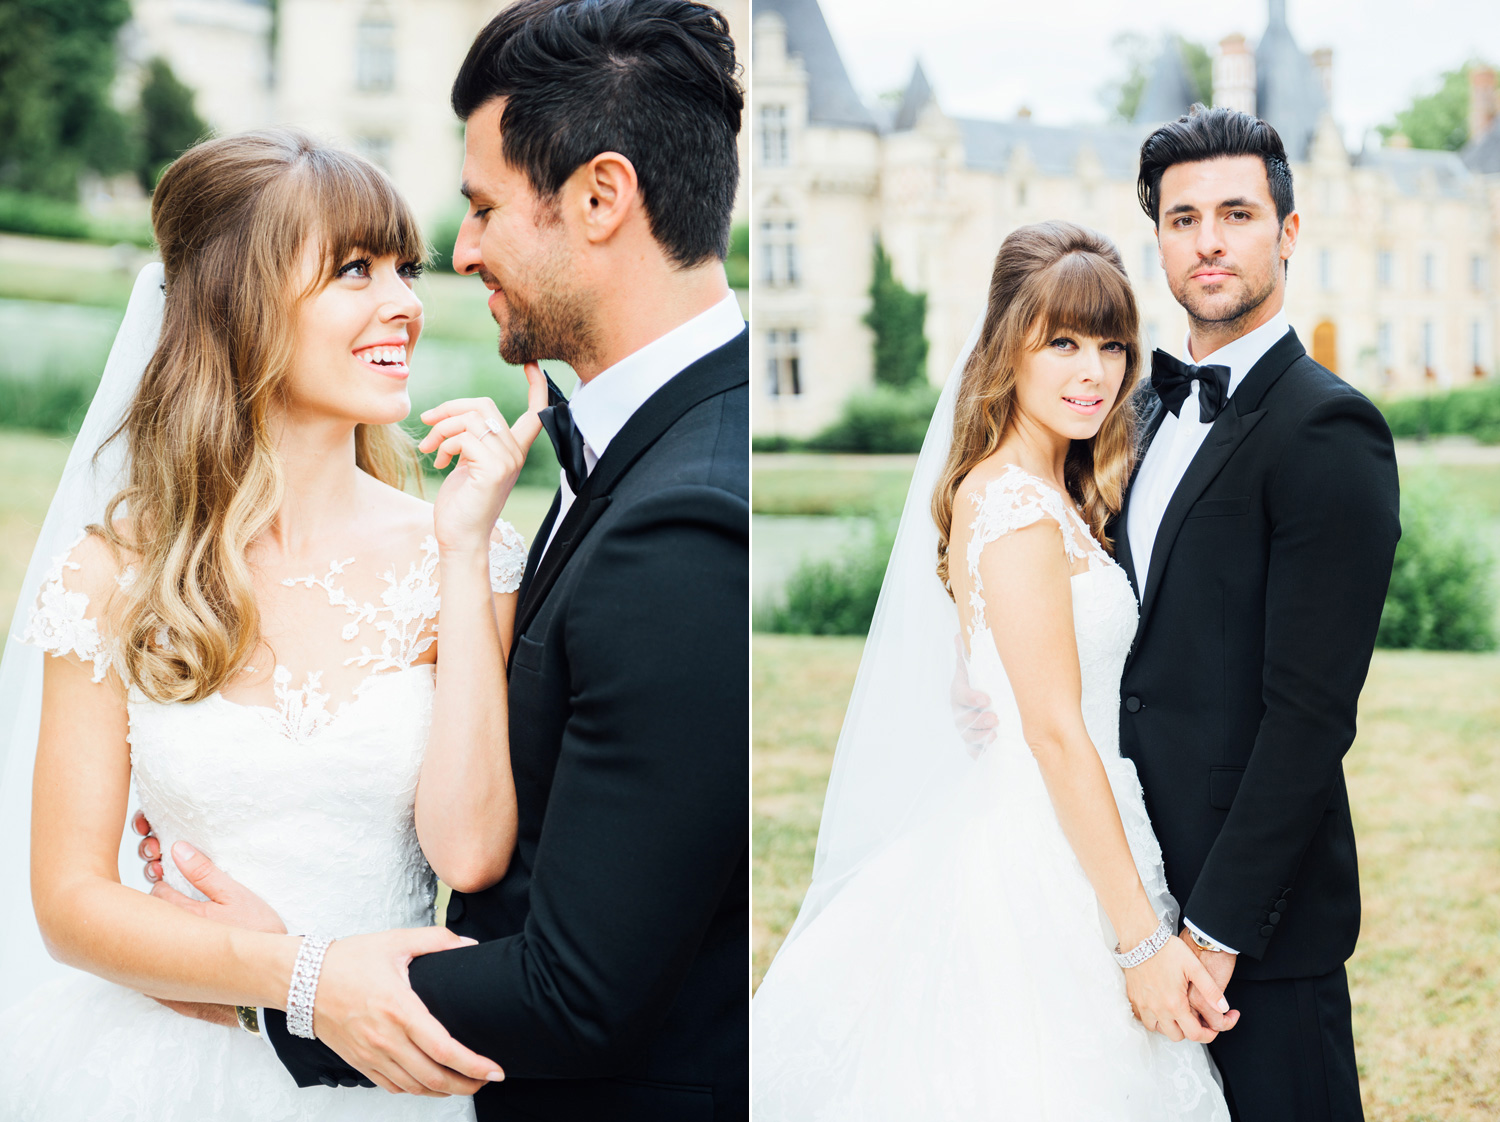 103-katie-mitchell-chateau-wedding-paris-france.jpg